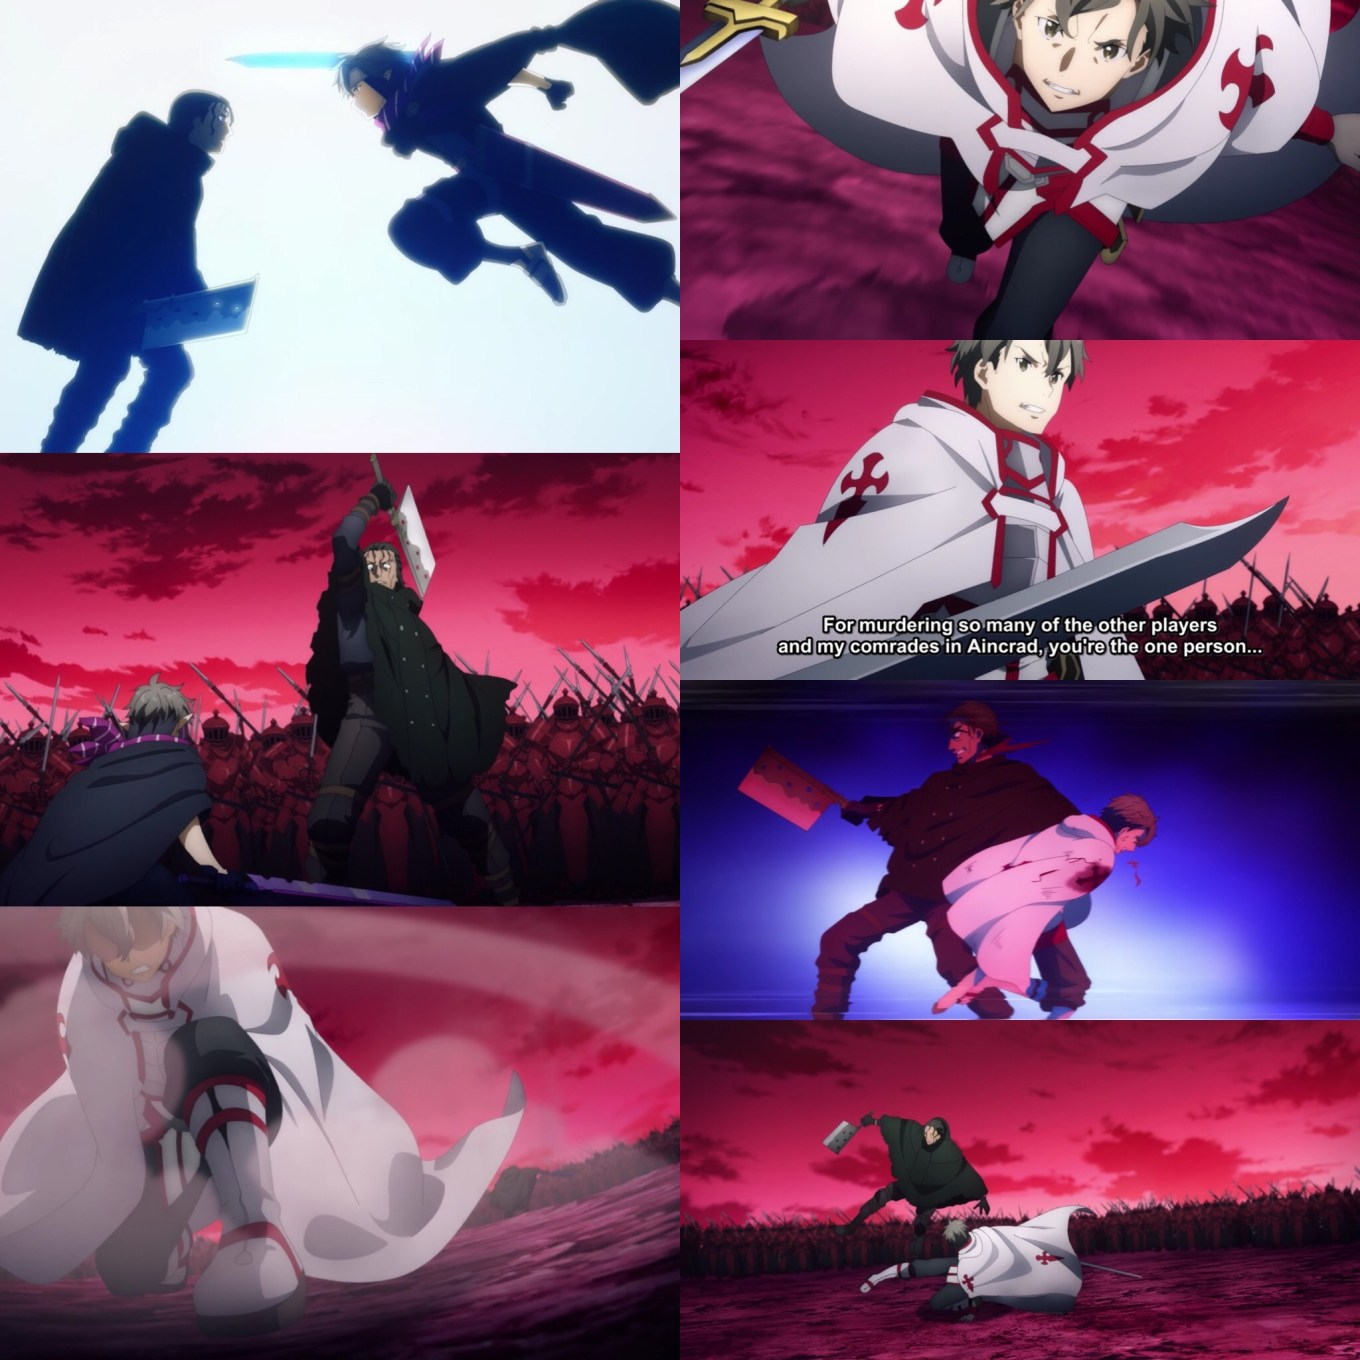 Sword Art Online: Alicization- War of Underworld Episode 41- Ordinal Scale's Best vs. PoH